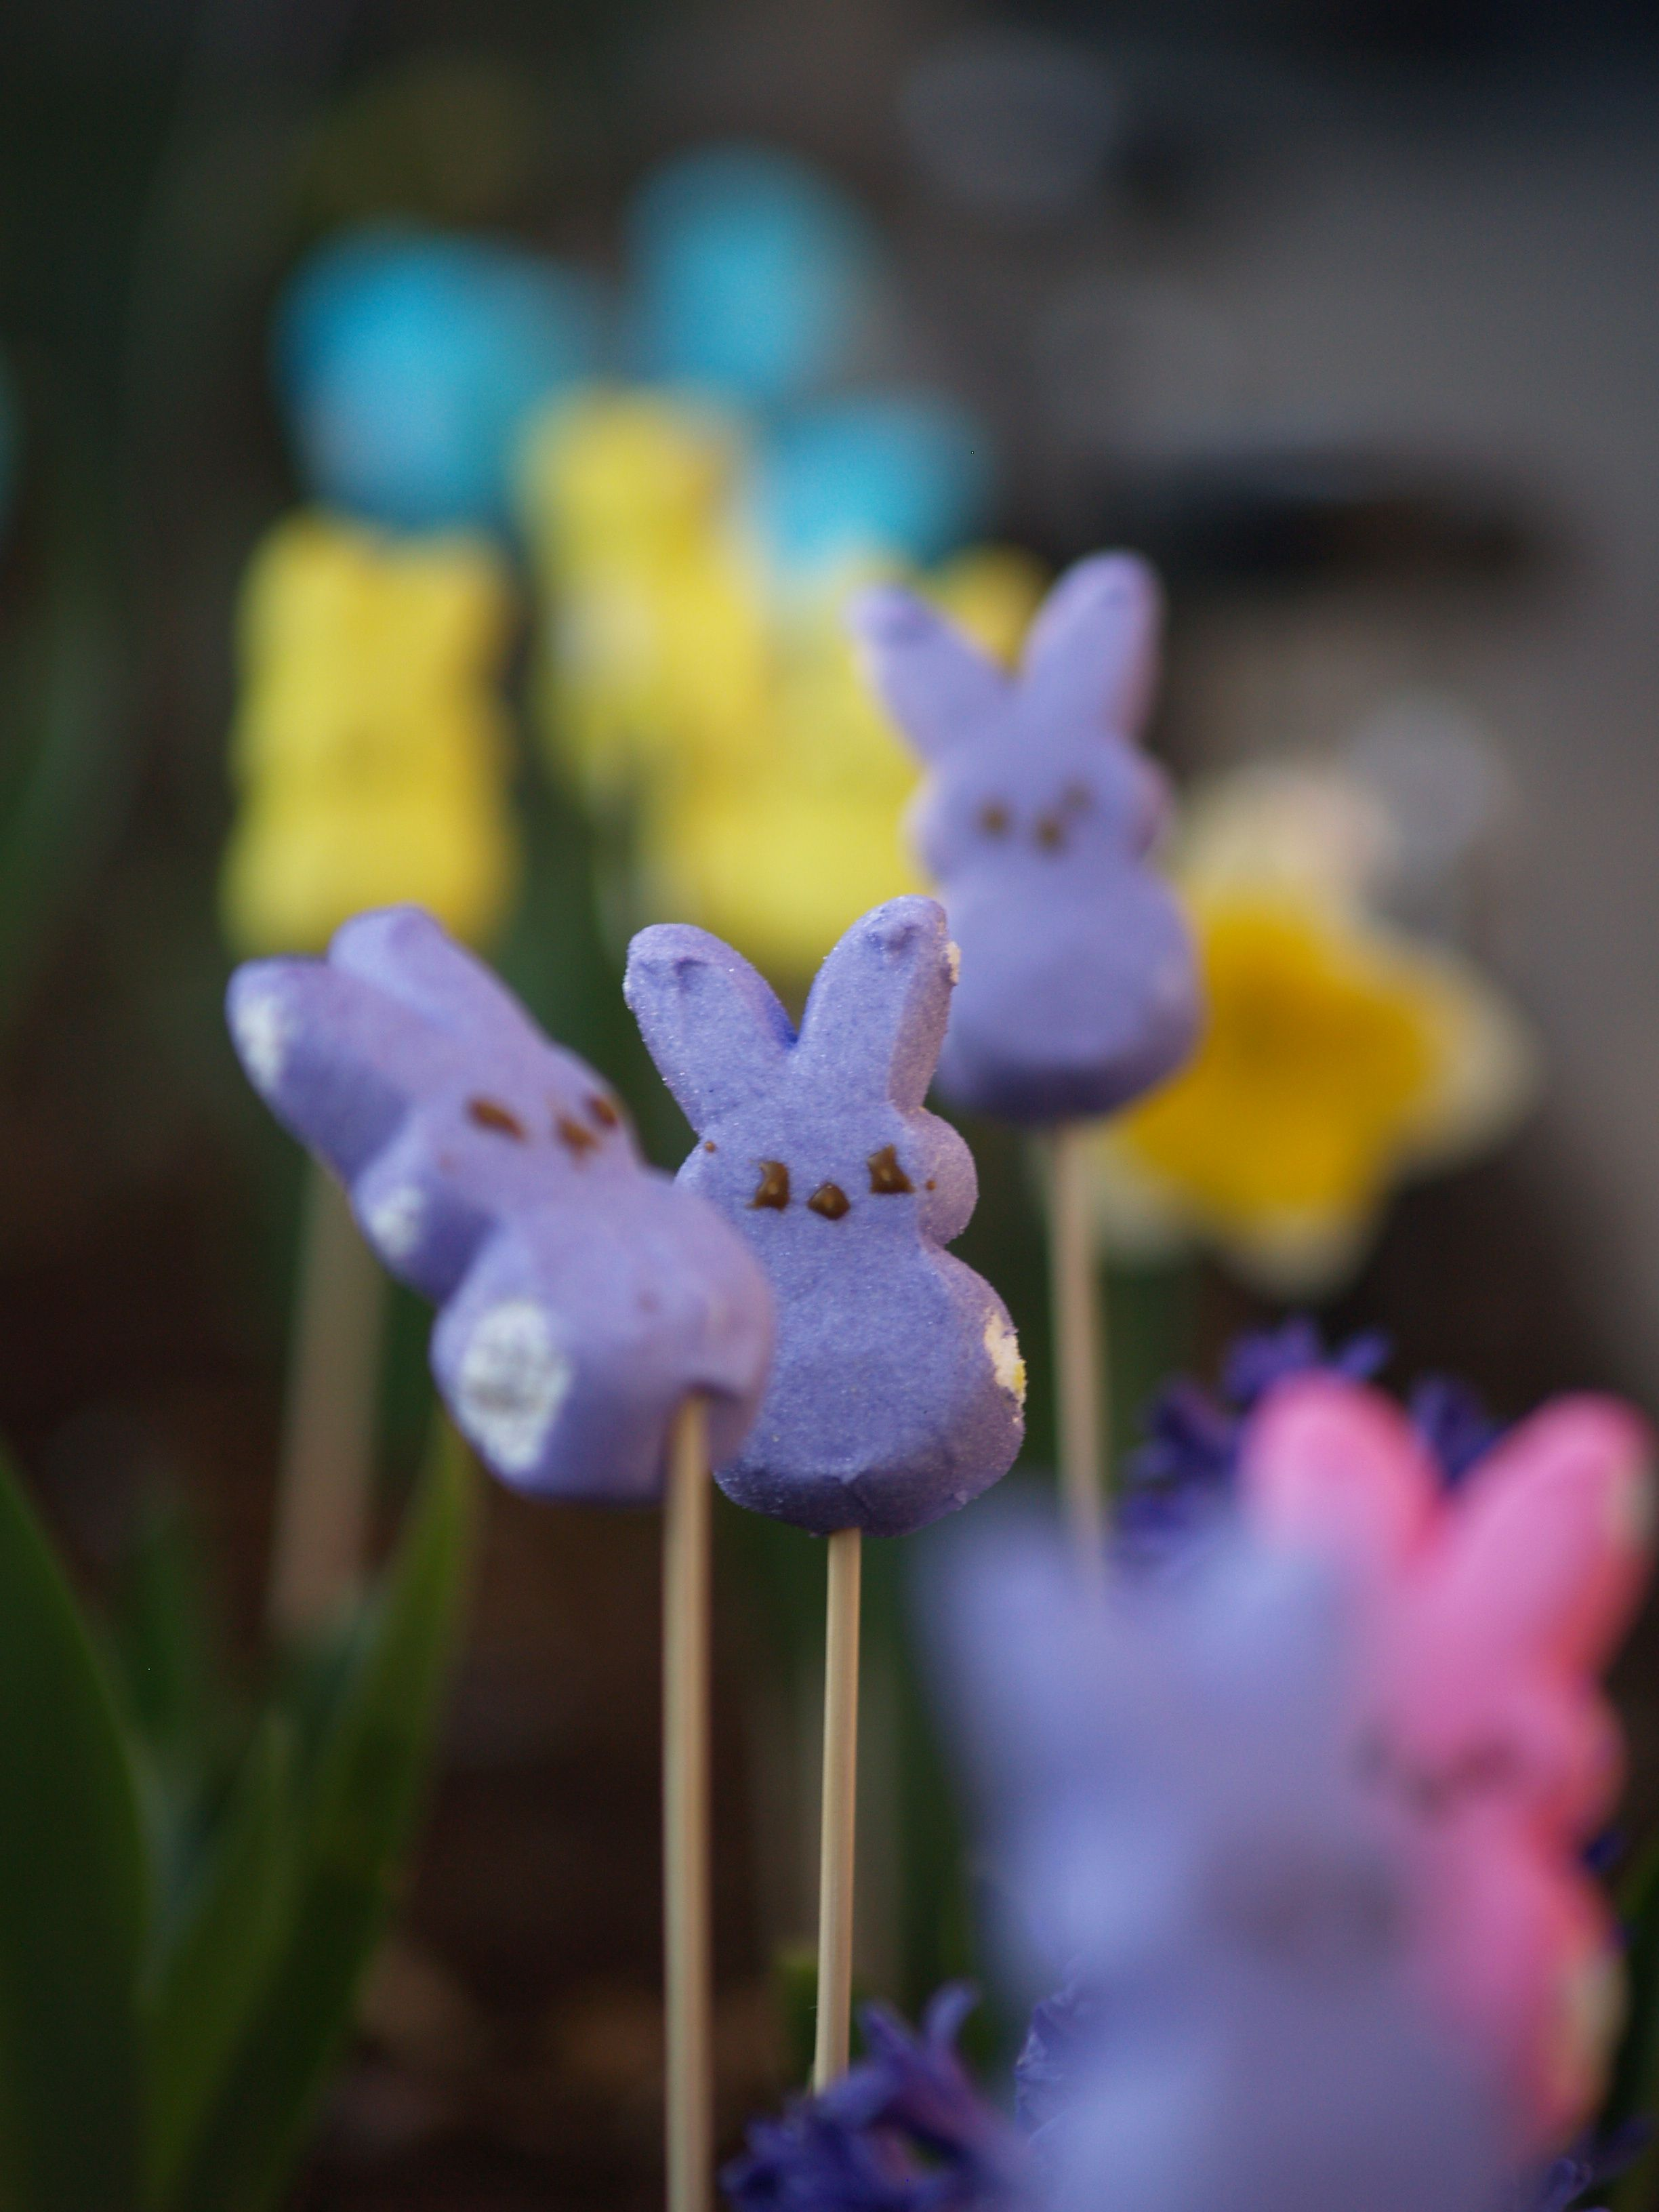 Peep Garden    My dad set up different colored peeps on BBQ stakes on the pathway to our house for my daughter. He matched the peeps' colors with the flowers. Very cute and Hannah loved it!